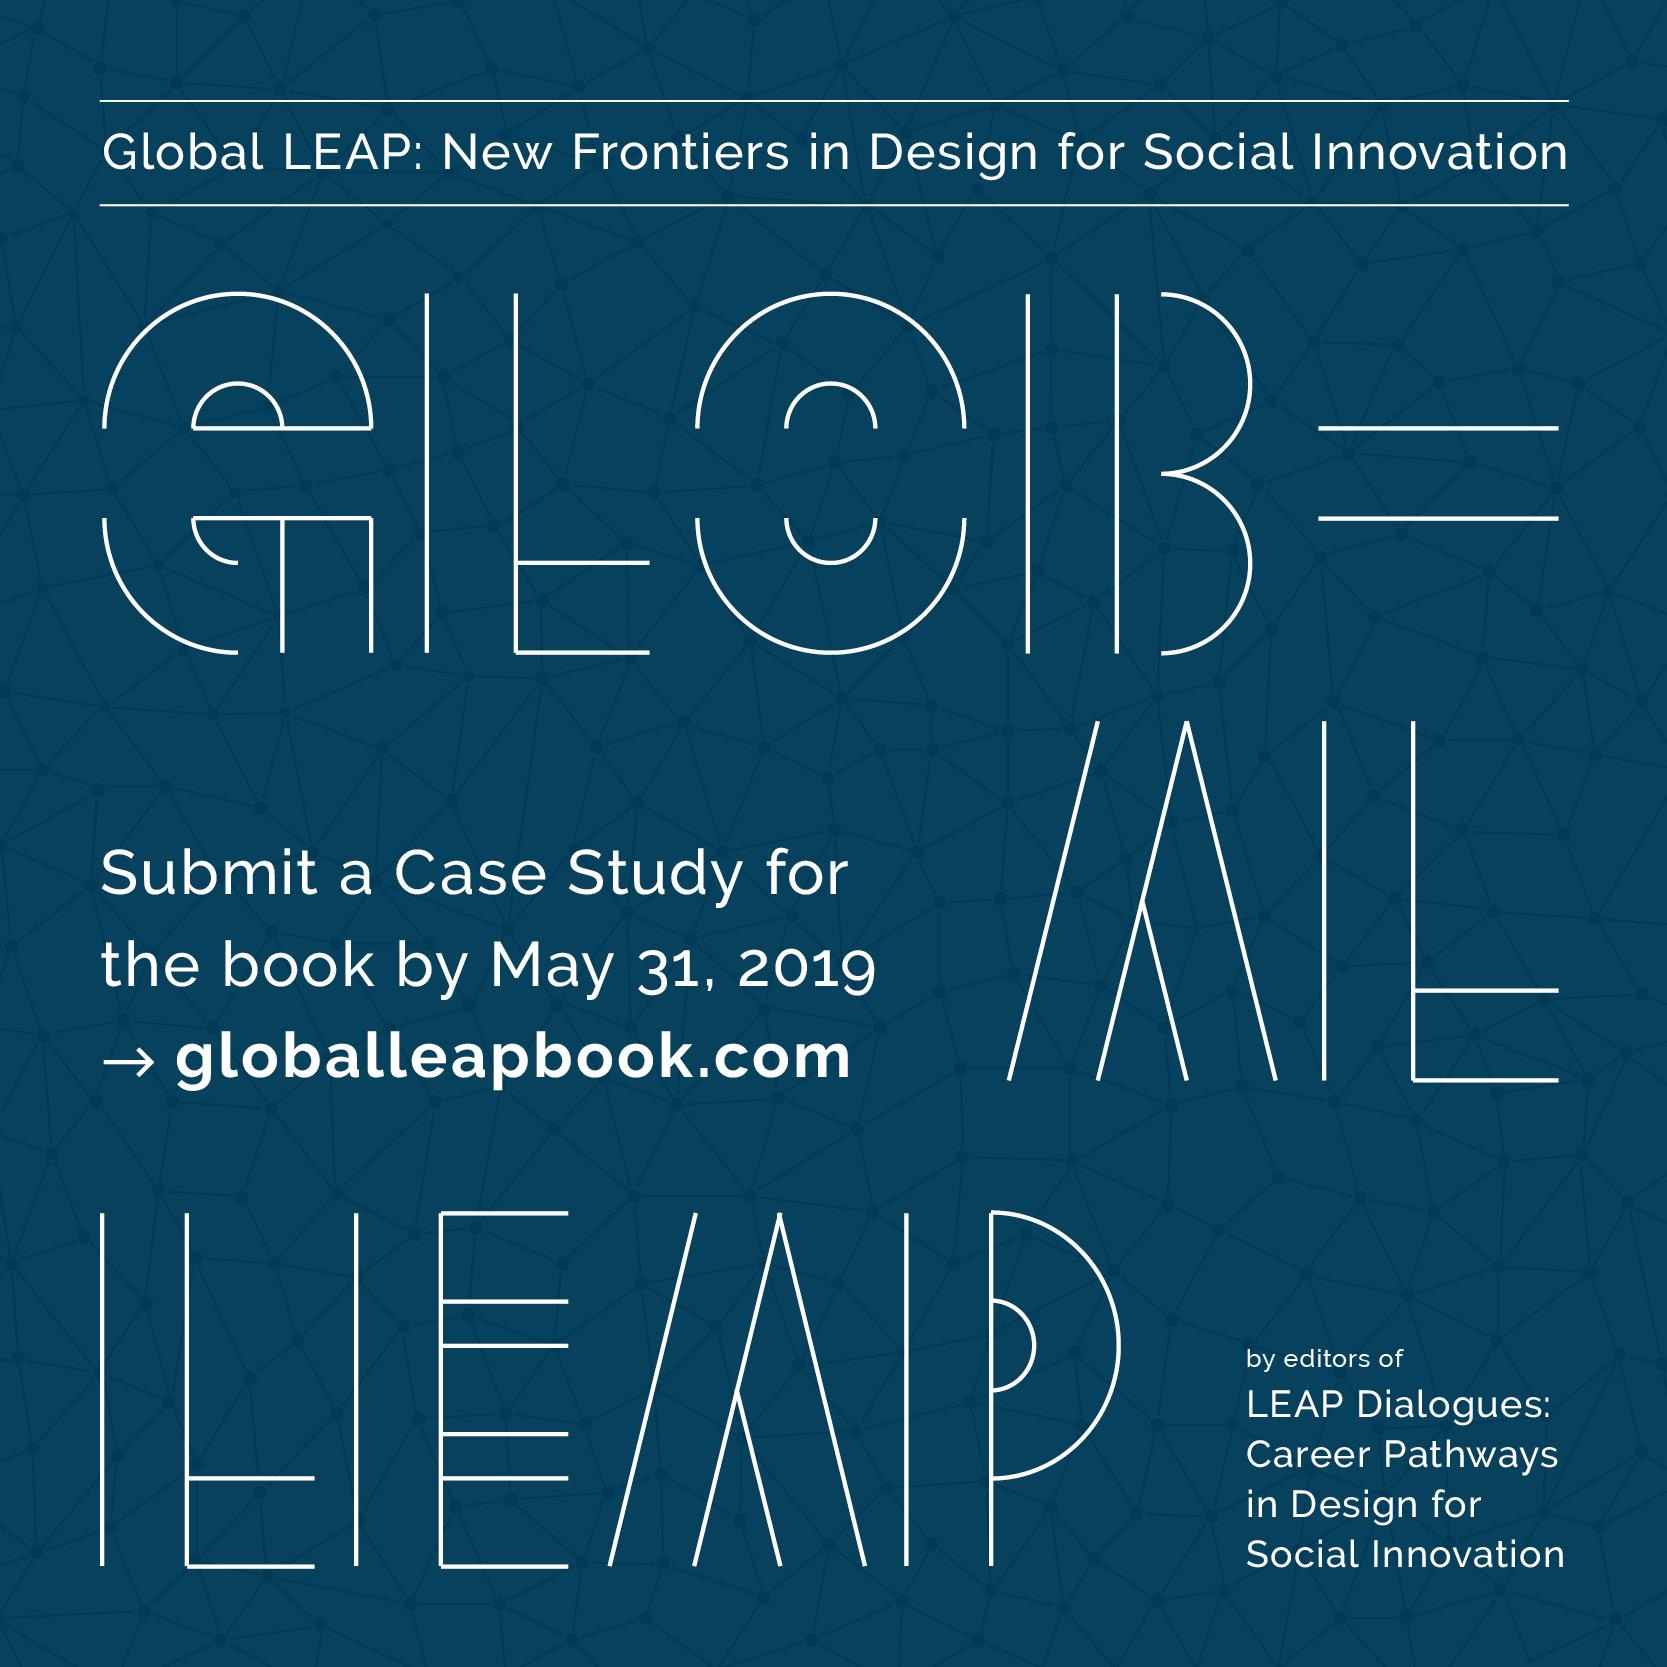 Isabella Gady On Twitter We Re Looking For 50 Amazing Design For Social Innovation Case Studies From Around The World To Highlight In Our Upcoming Publication Global Leap New Frontiers In Design For